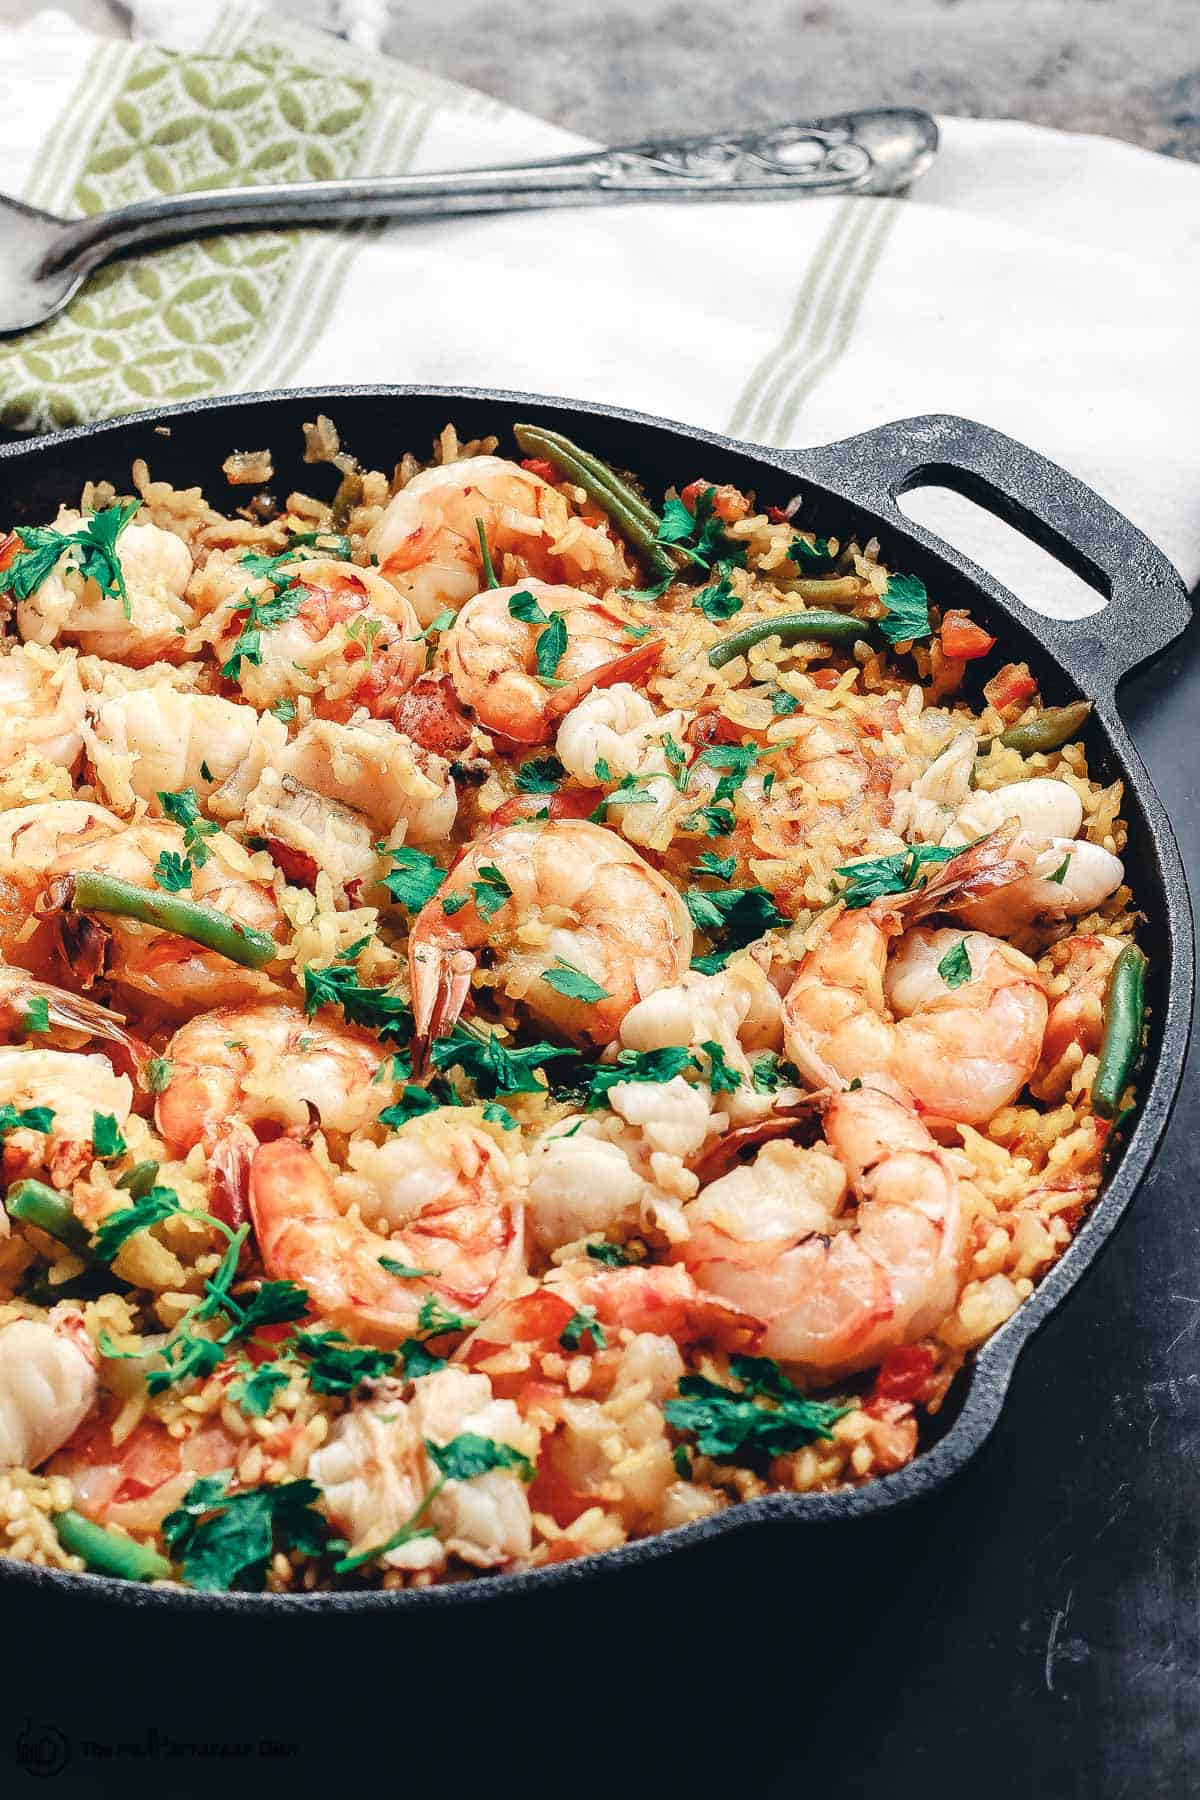 Seafood paella in a cast iron skillet